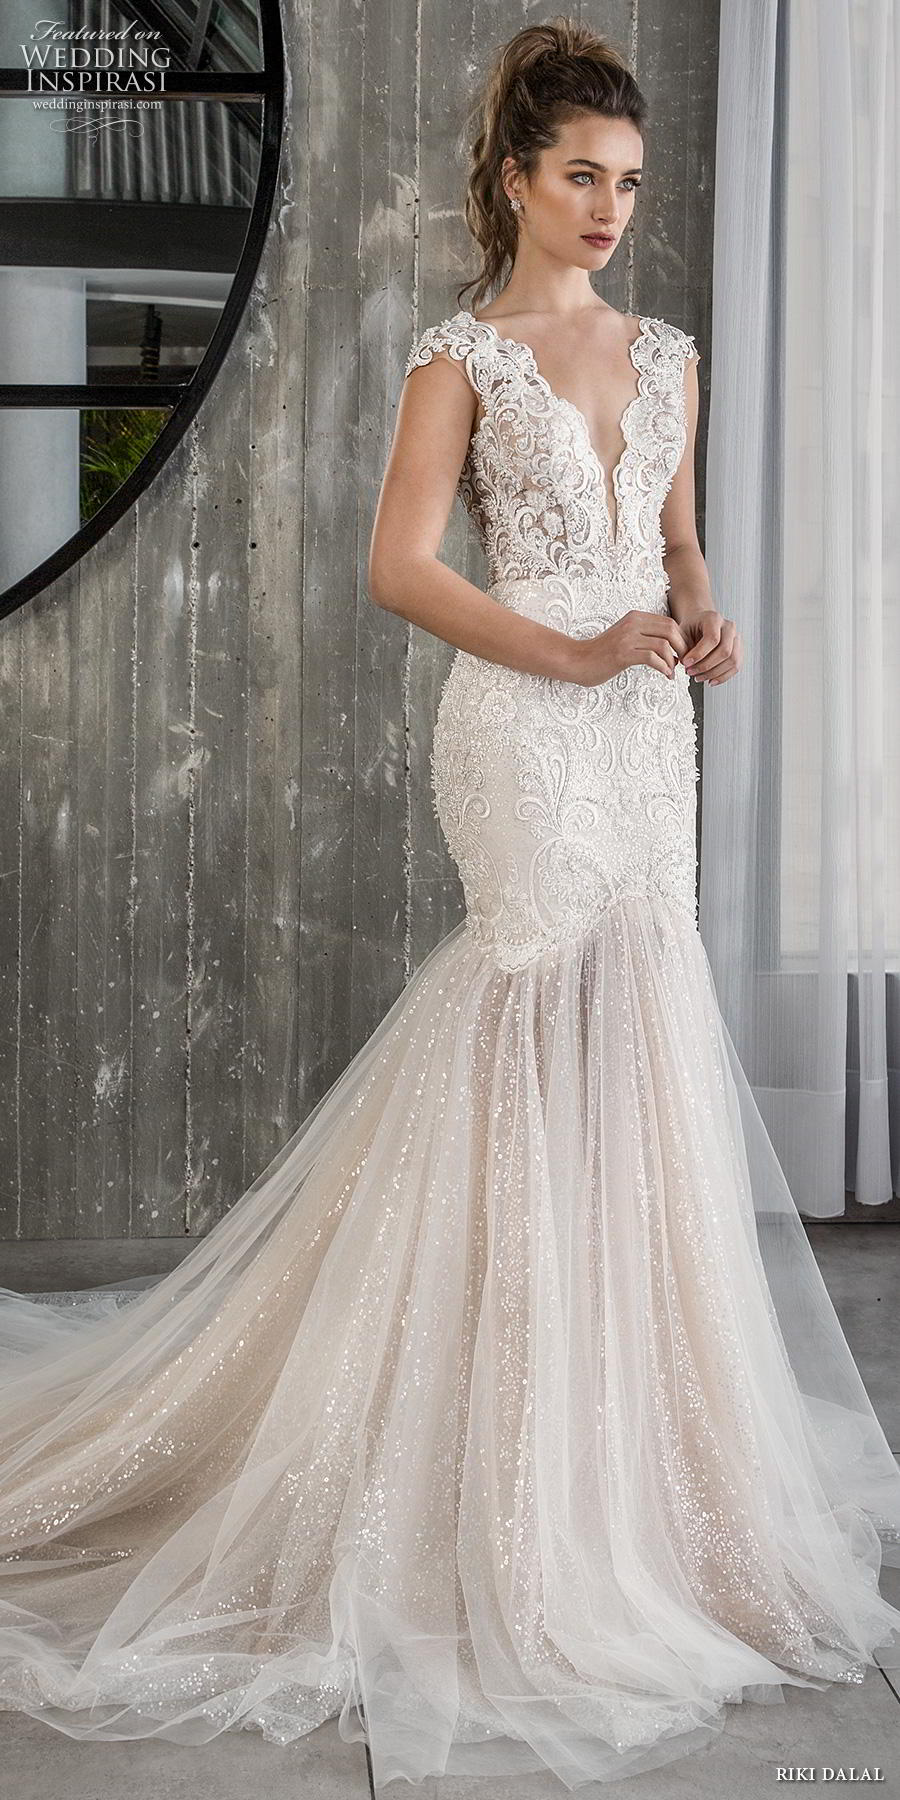 riki dalal 2018 glamour bridal sleeveless deep plunging v neck full embellishment elegant blush mermaid wedding dress open low back chapel train (5) mv